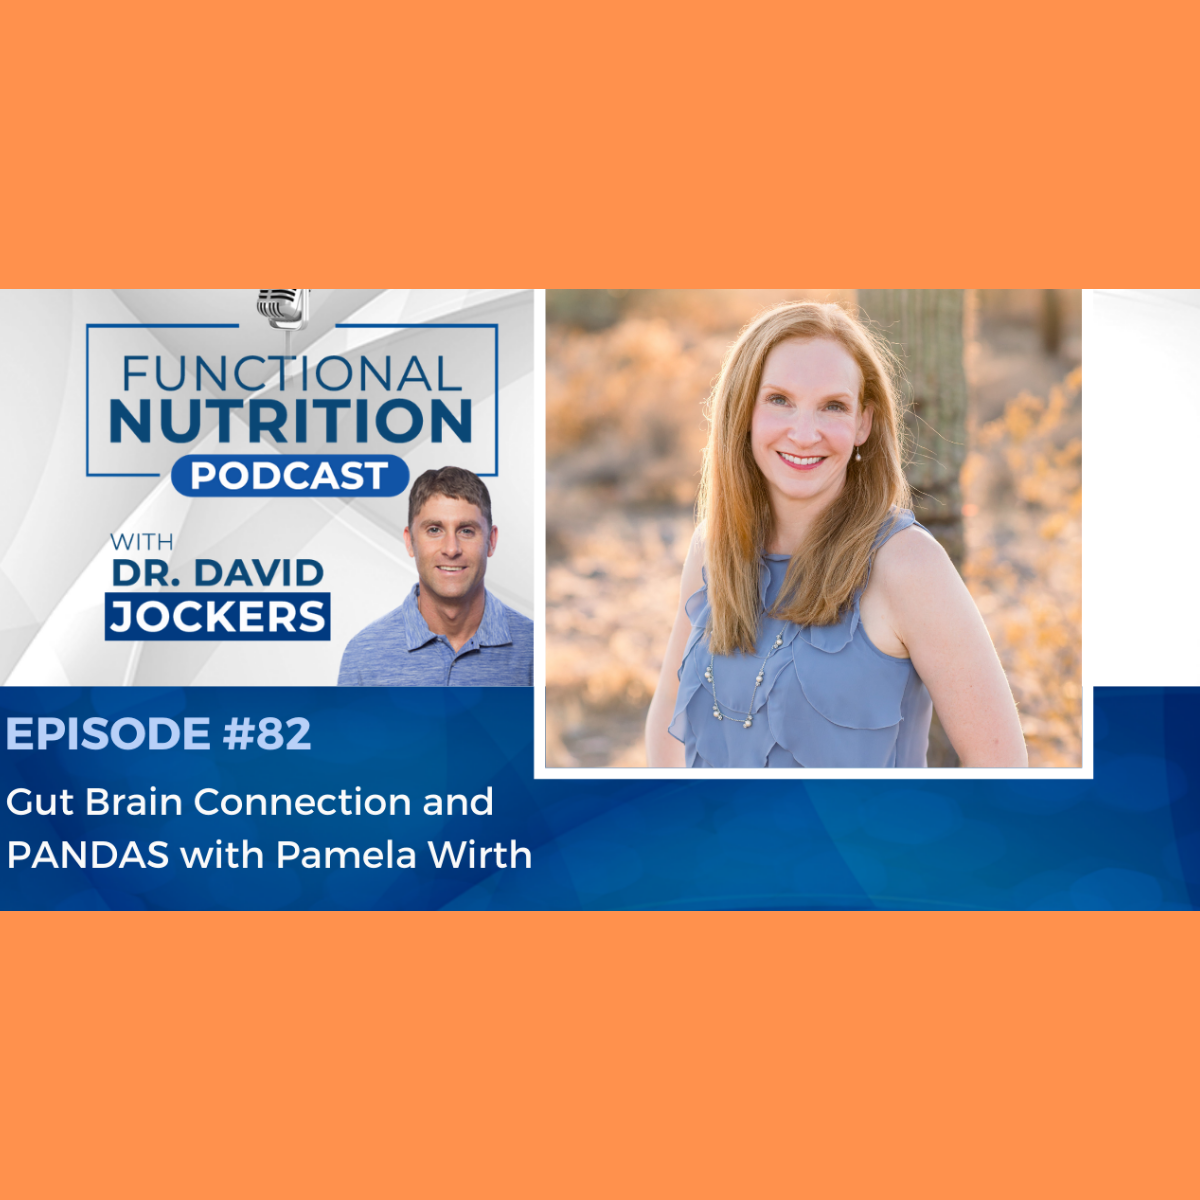 Dr. Jockers - Your Functional Nutrition Podcast Interview With Hello Health® Founder Pamela Wirth